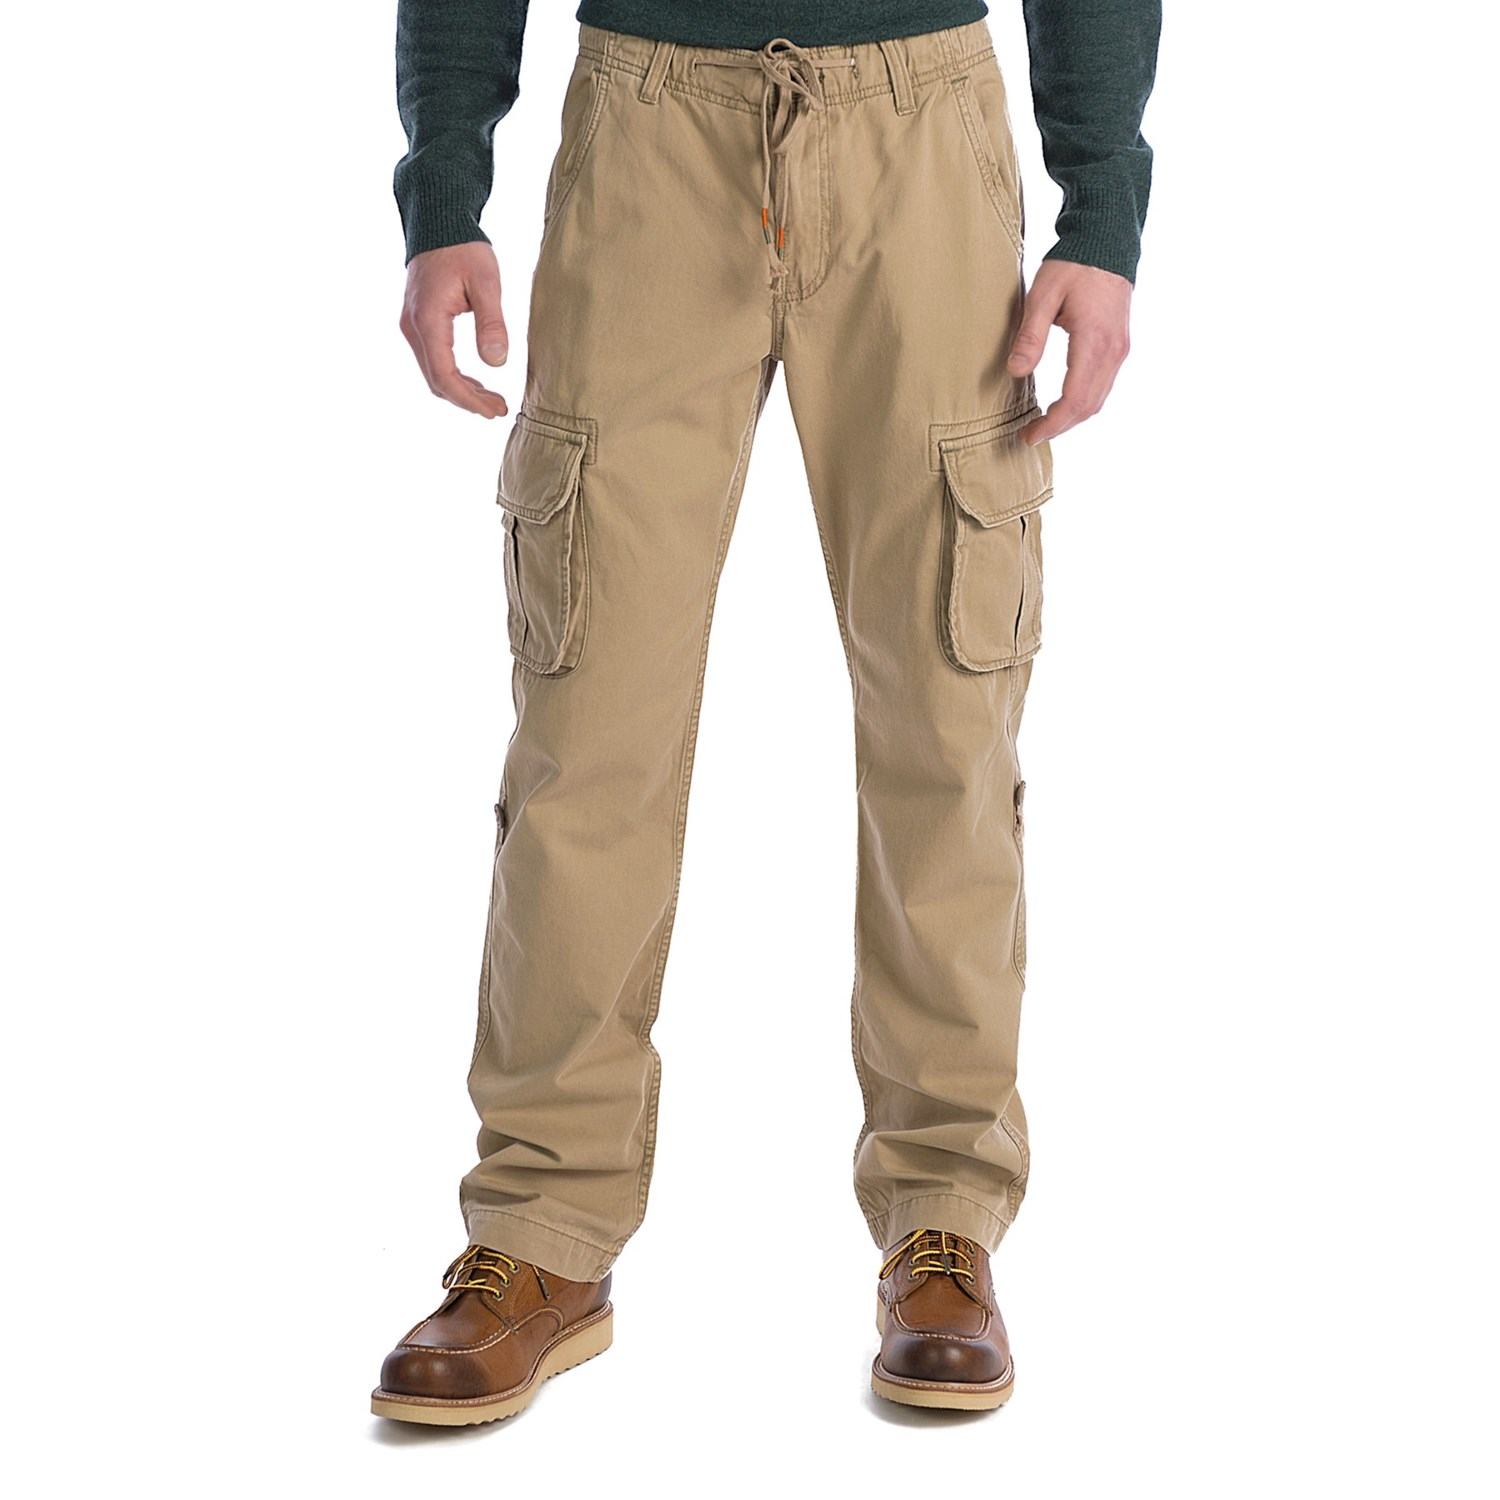 Chinos: a brief brand analysis (ganjamoney.tkshionadvice) submitted 5 years ago * by dccorona I've decided to write my second clothing breakdown on chinos, a pretty popular clothing piece on this subreddit.